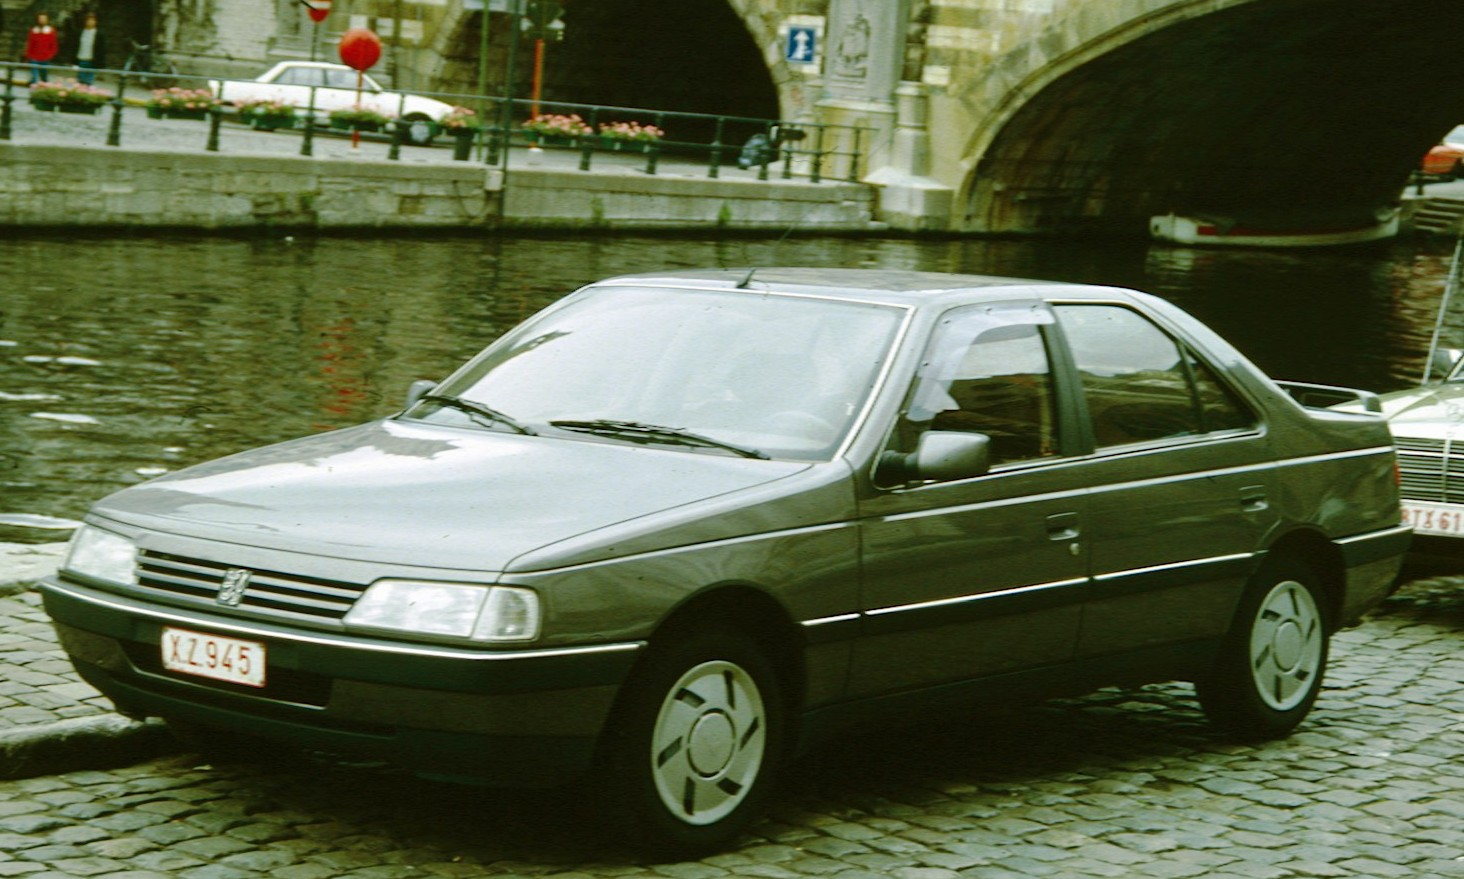 Description Peugeot 405 with canal in Belgium.jpg